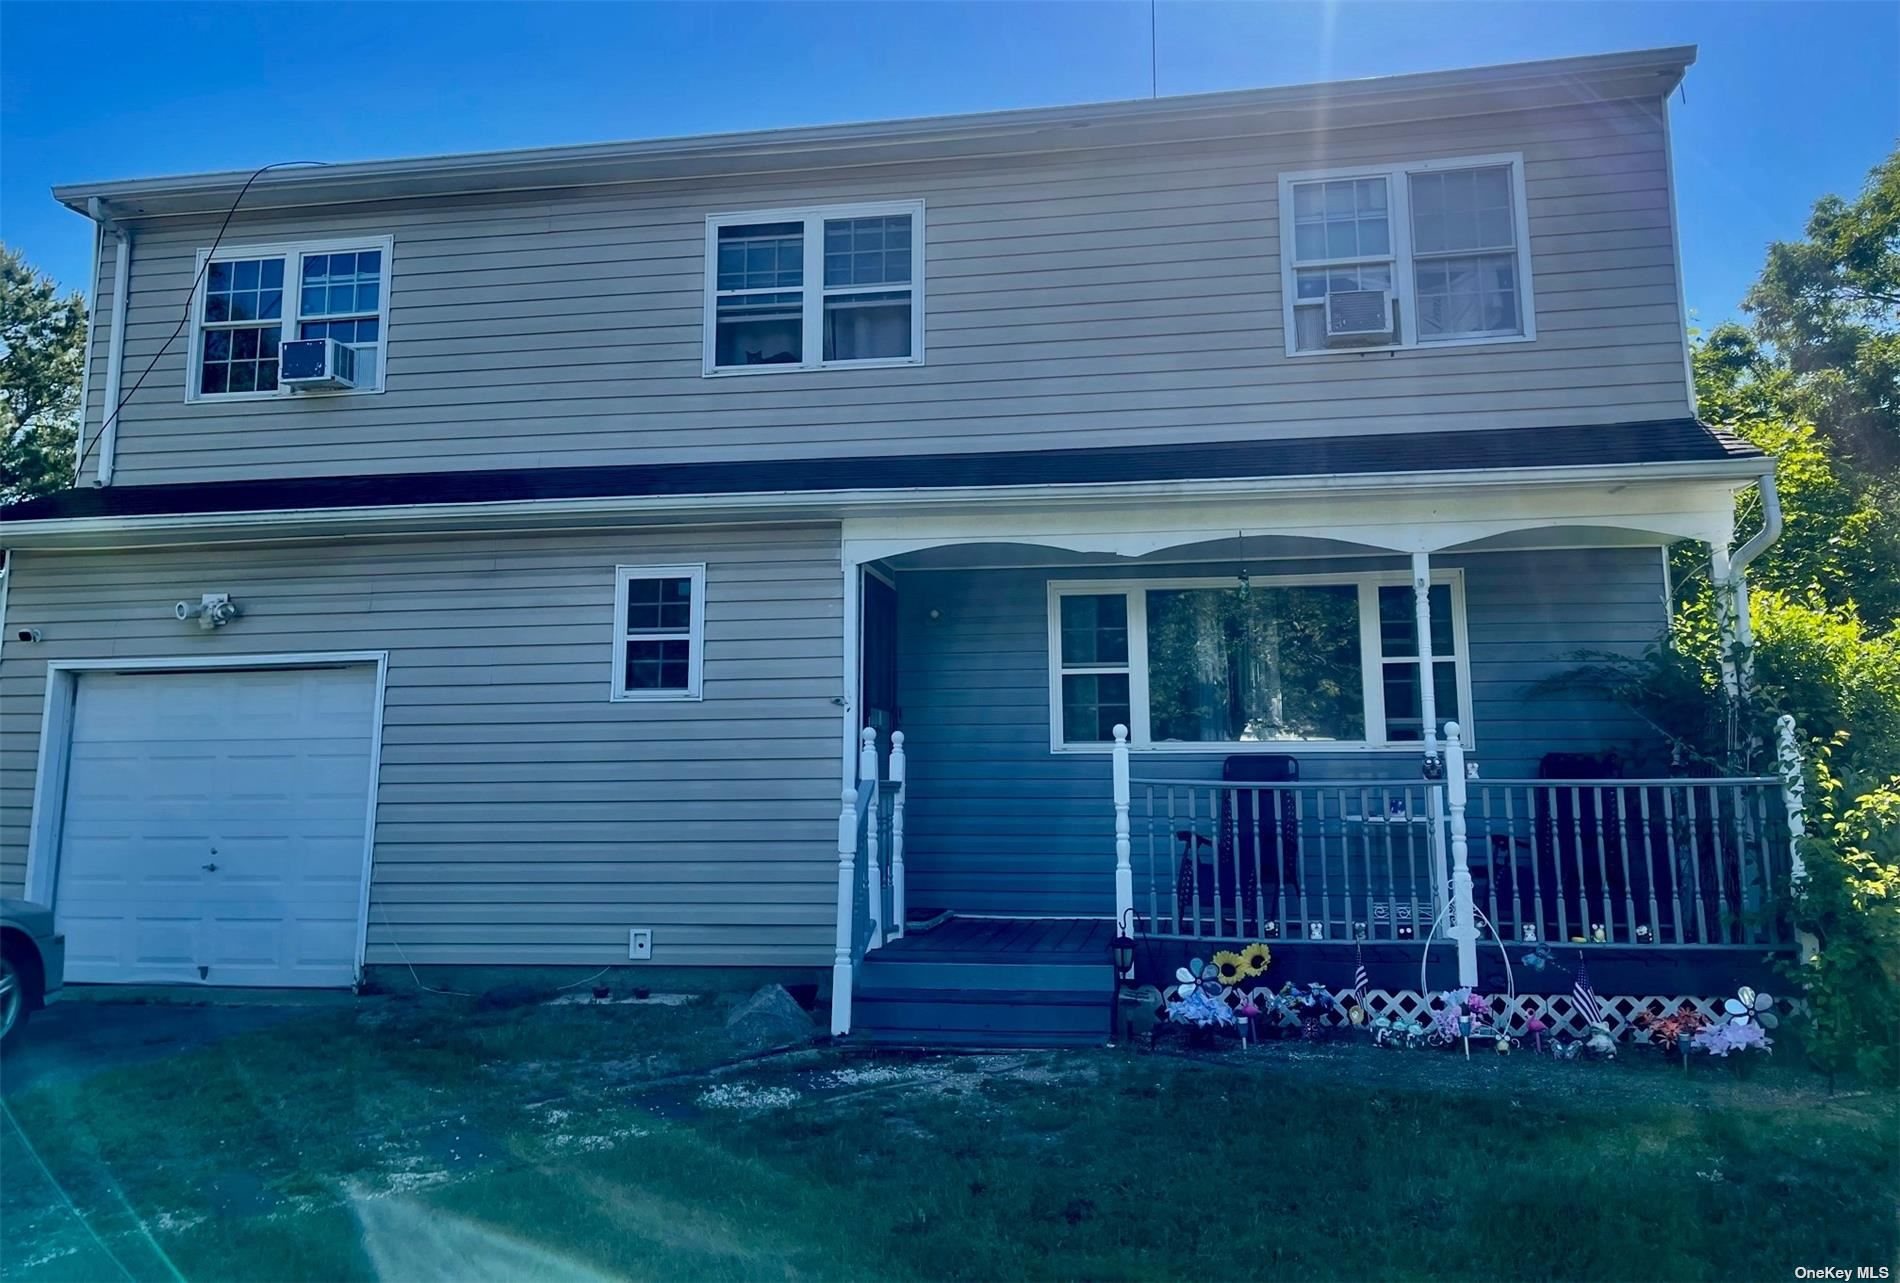 29 Redlef Street, East Patchogue, NY 11772 - MLS#: 3326066